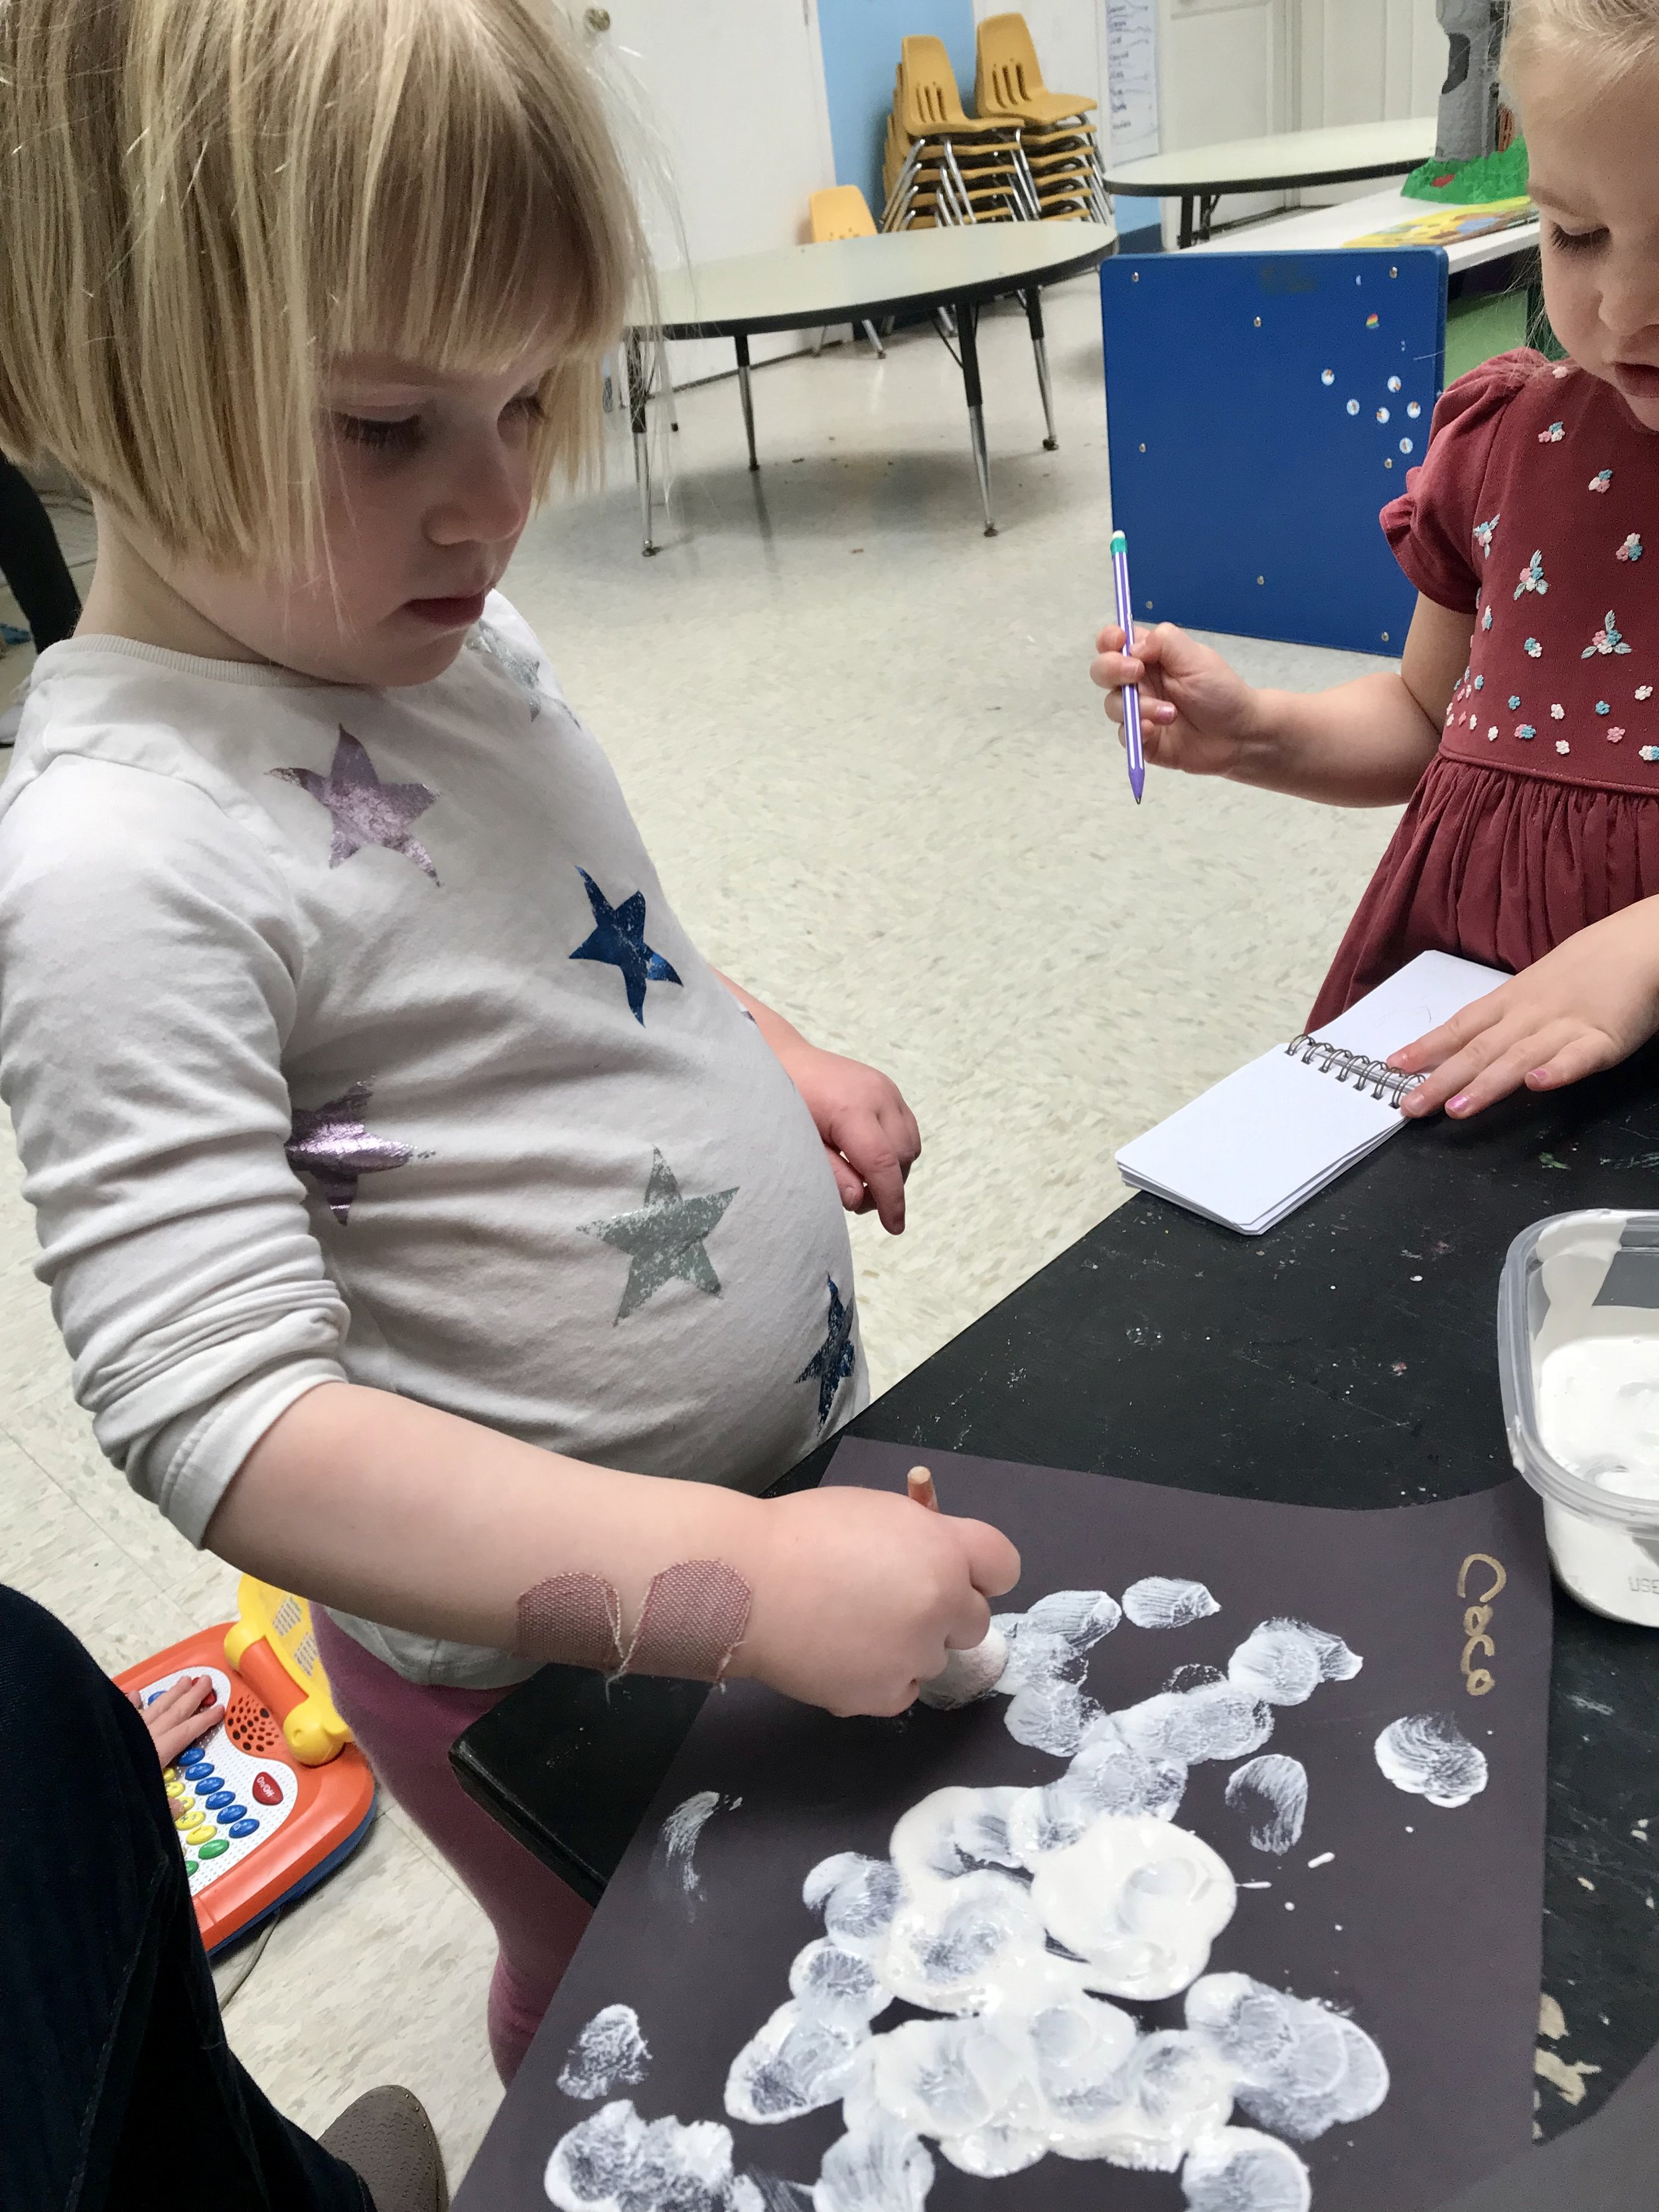 We were working on an art project in keeping with our monthly nursery rhyme (Little Bo Peep).